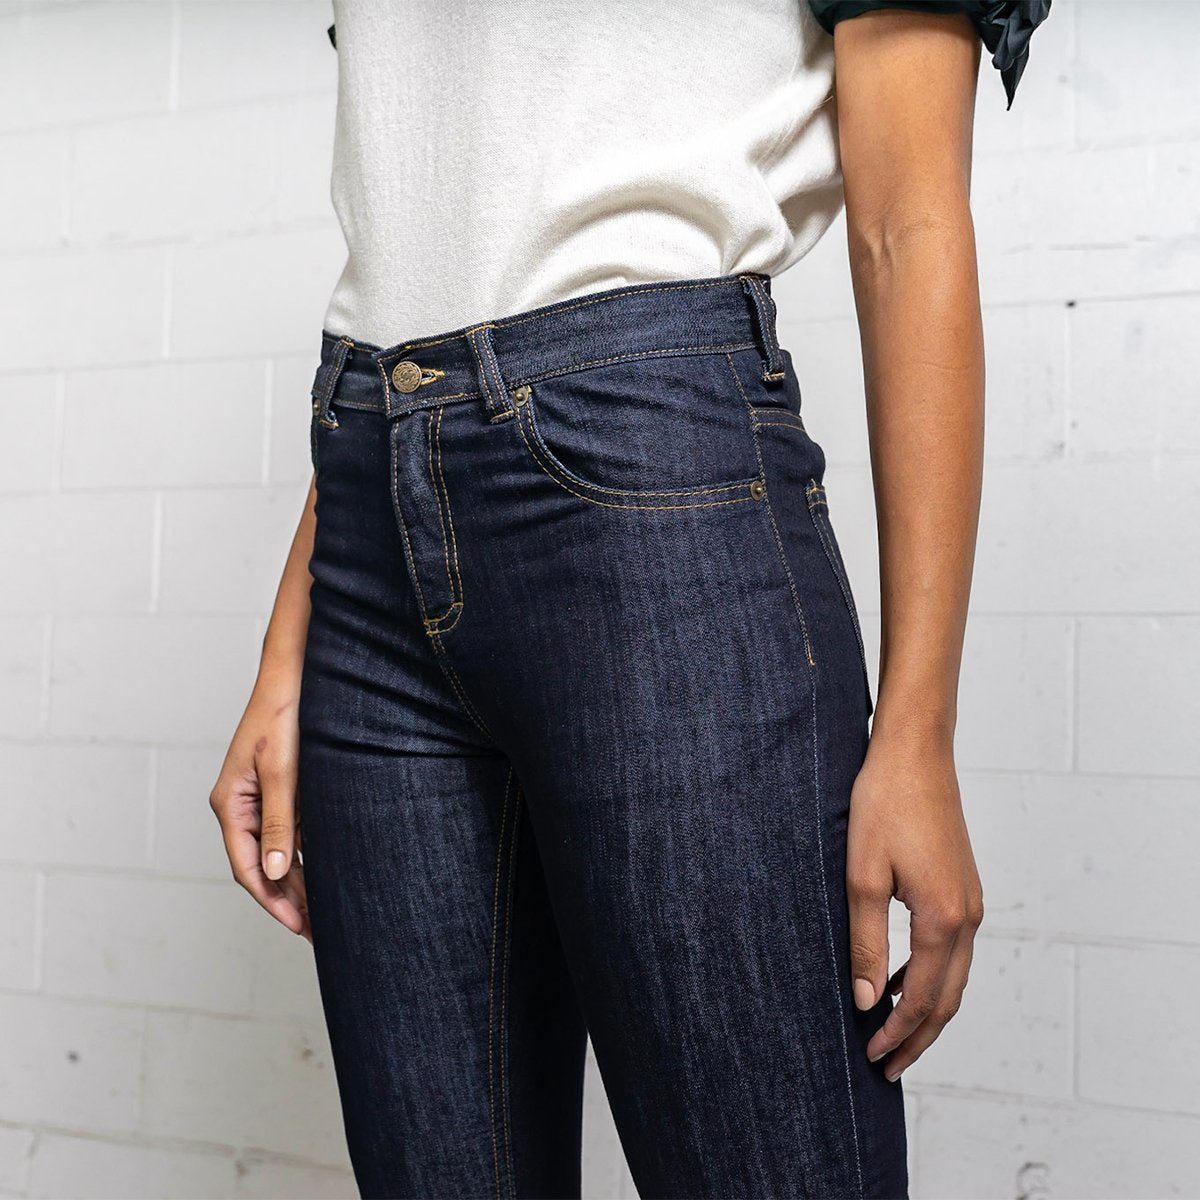 More images: #9: Skinny High Rise Dark Wash